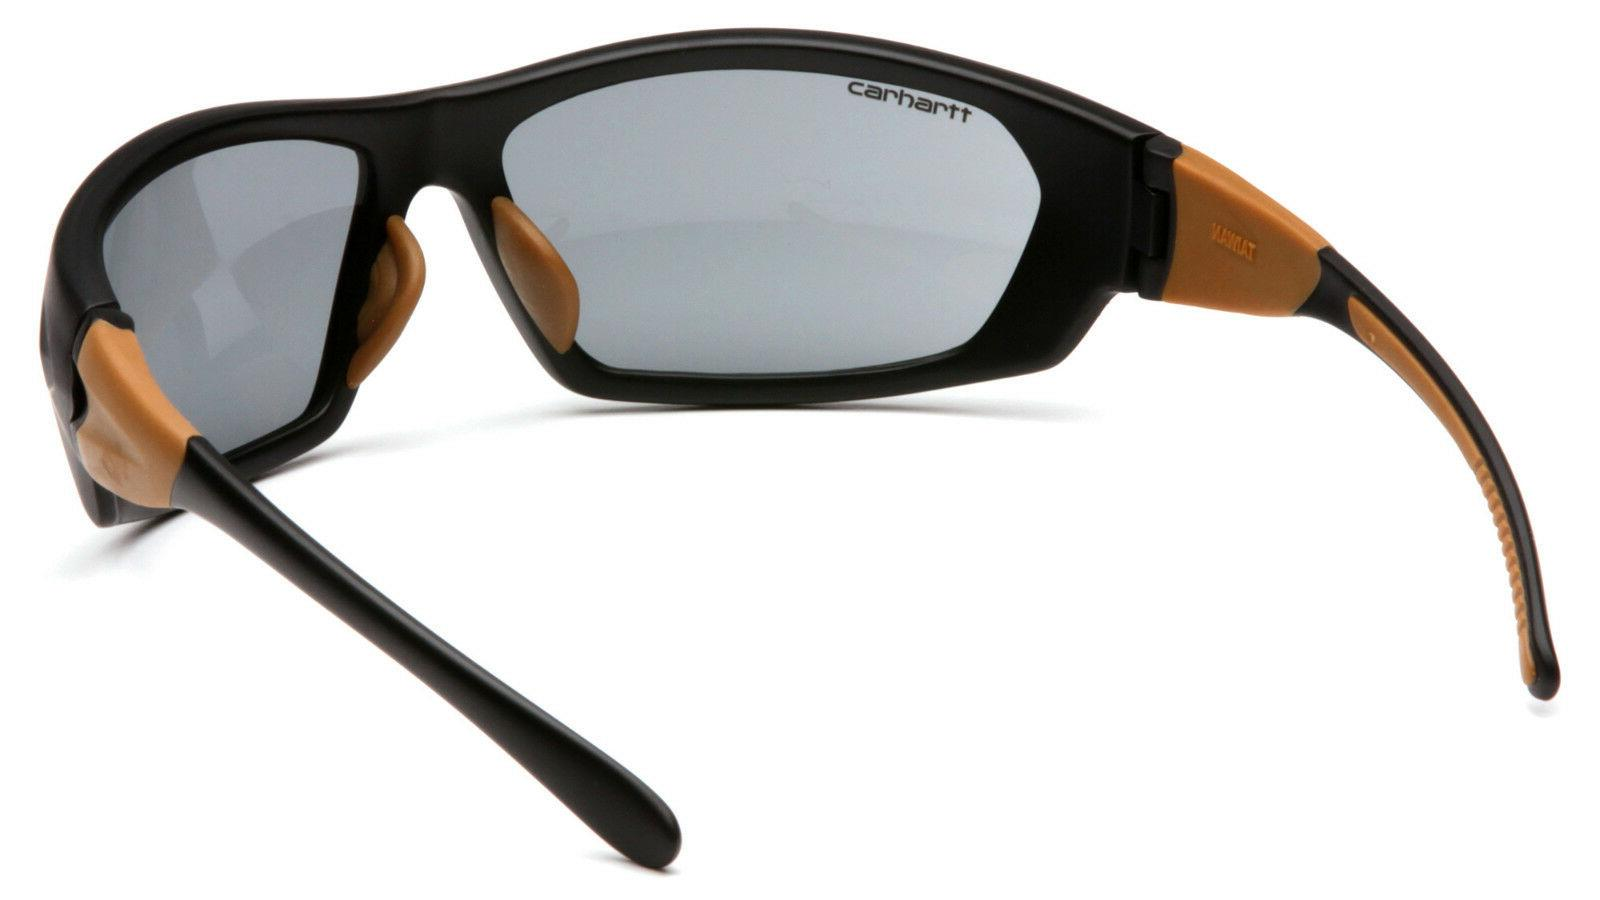 Carhartt Safety Glasses Carbondale Gray